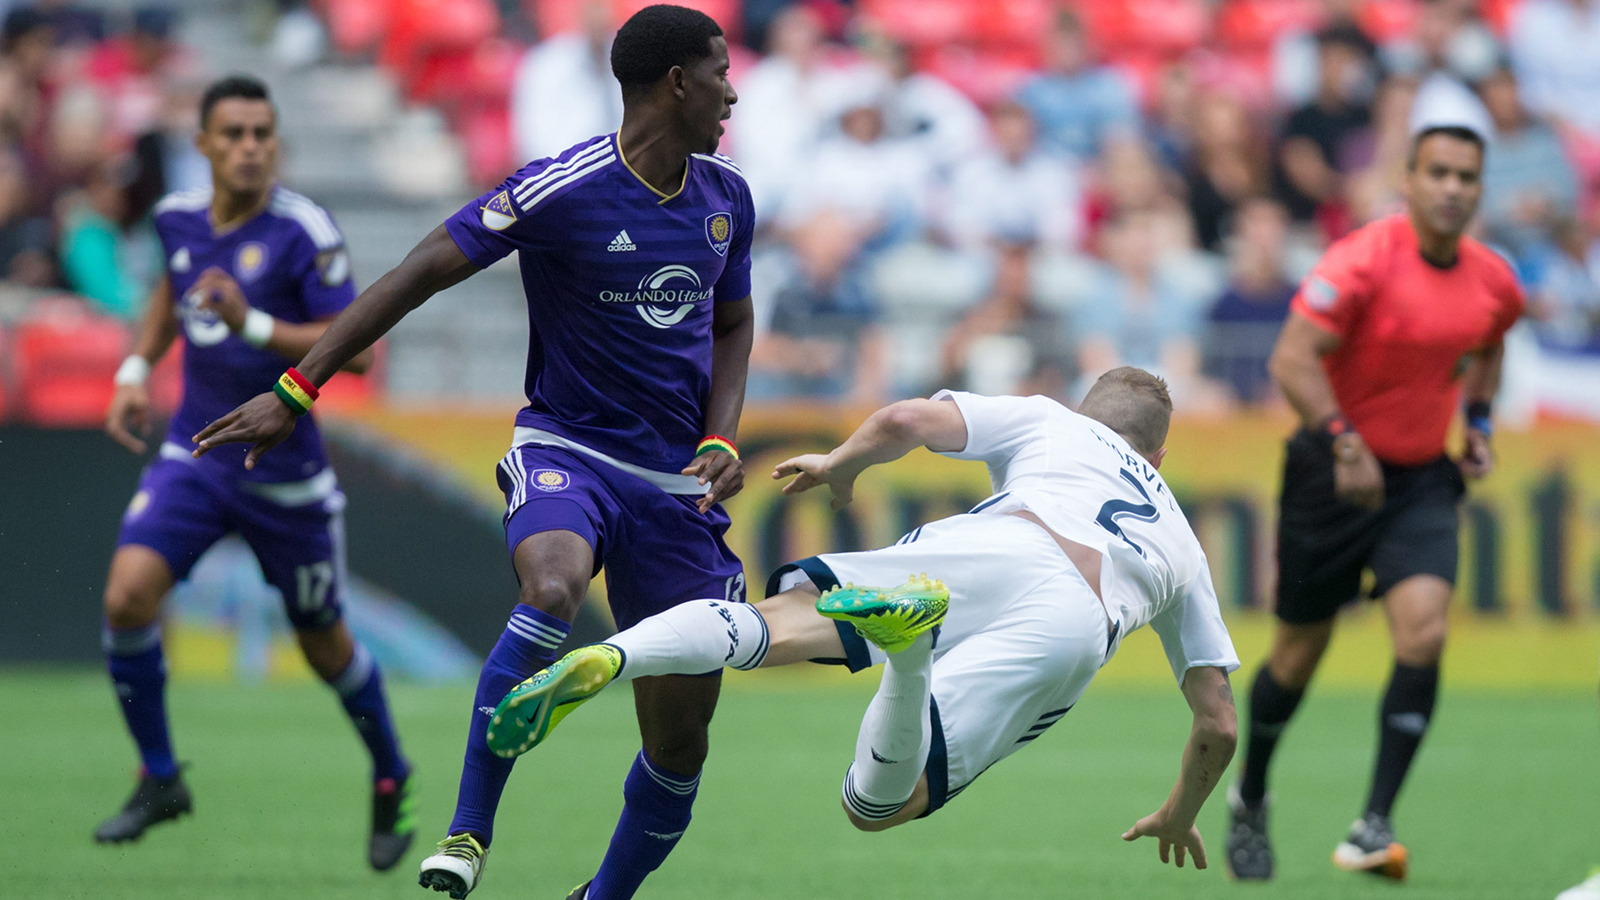 Cyle Larin scores for Orlando City in draw with Vancouver Whitecaps